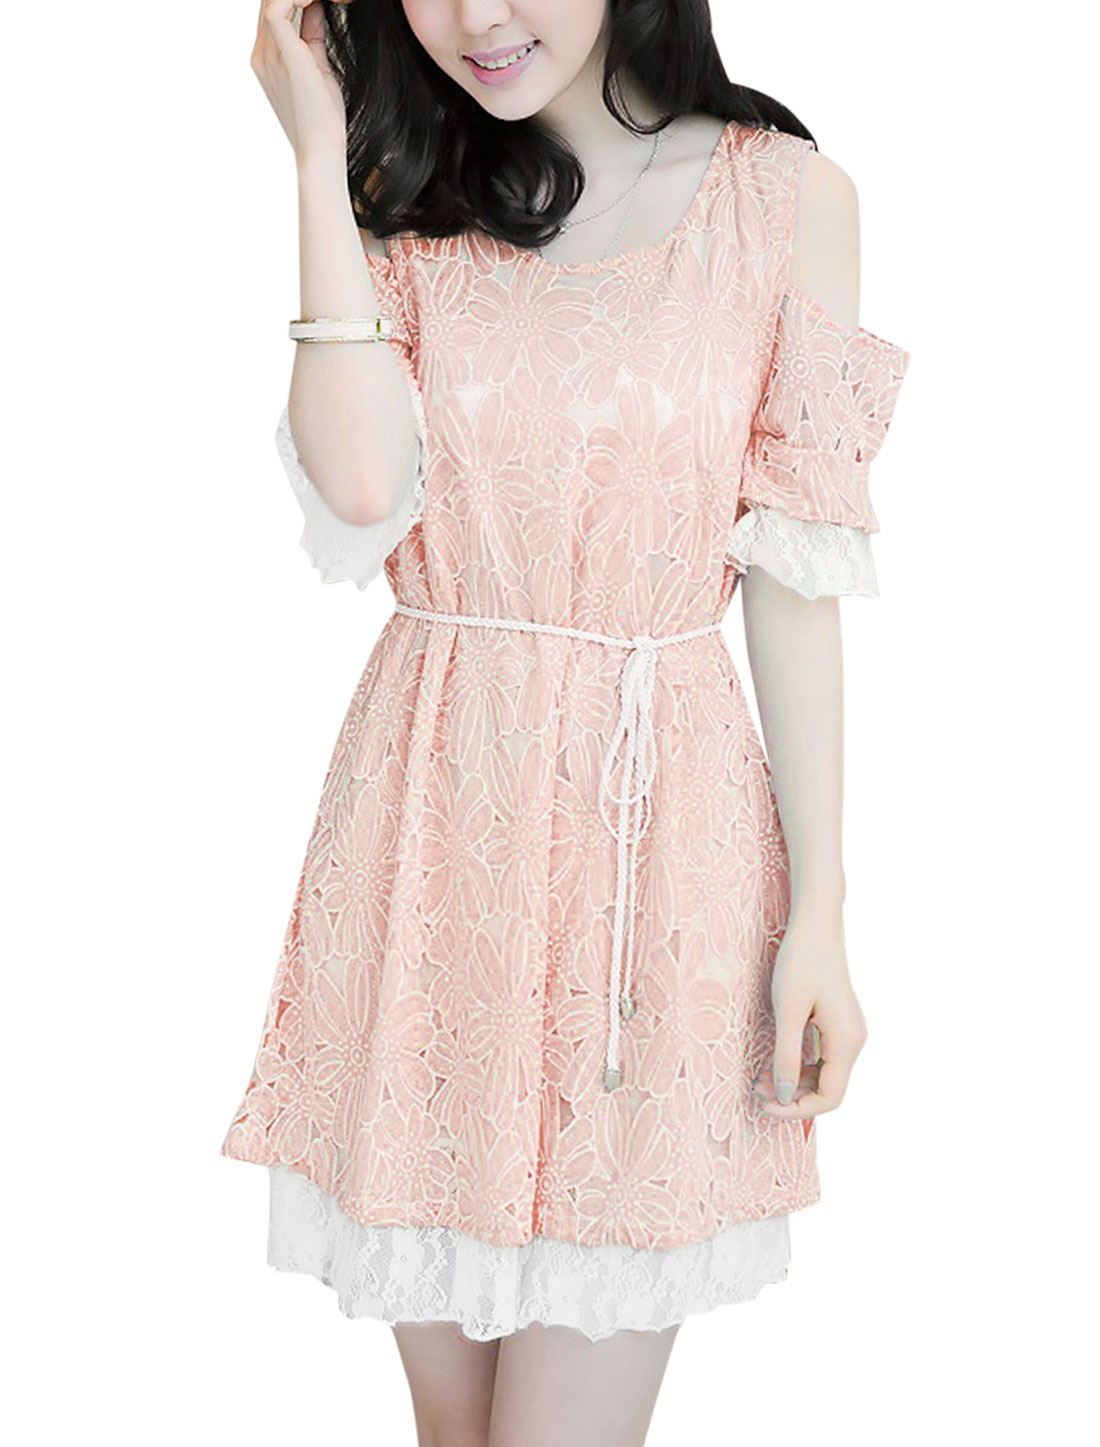 Lady Casual Cut Out Shoulder Flower Pattern Dress w Waist String Pink M